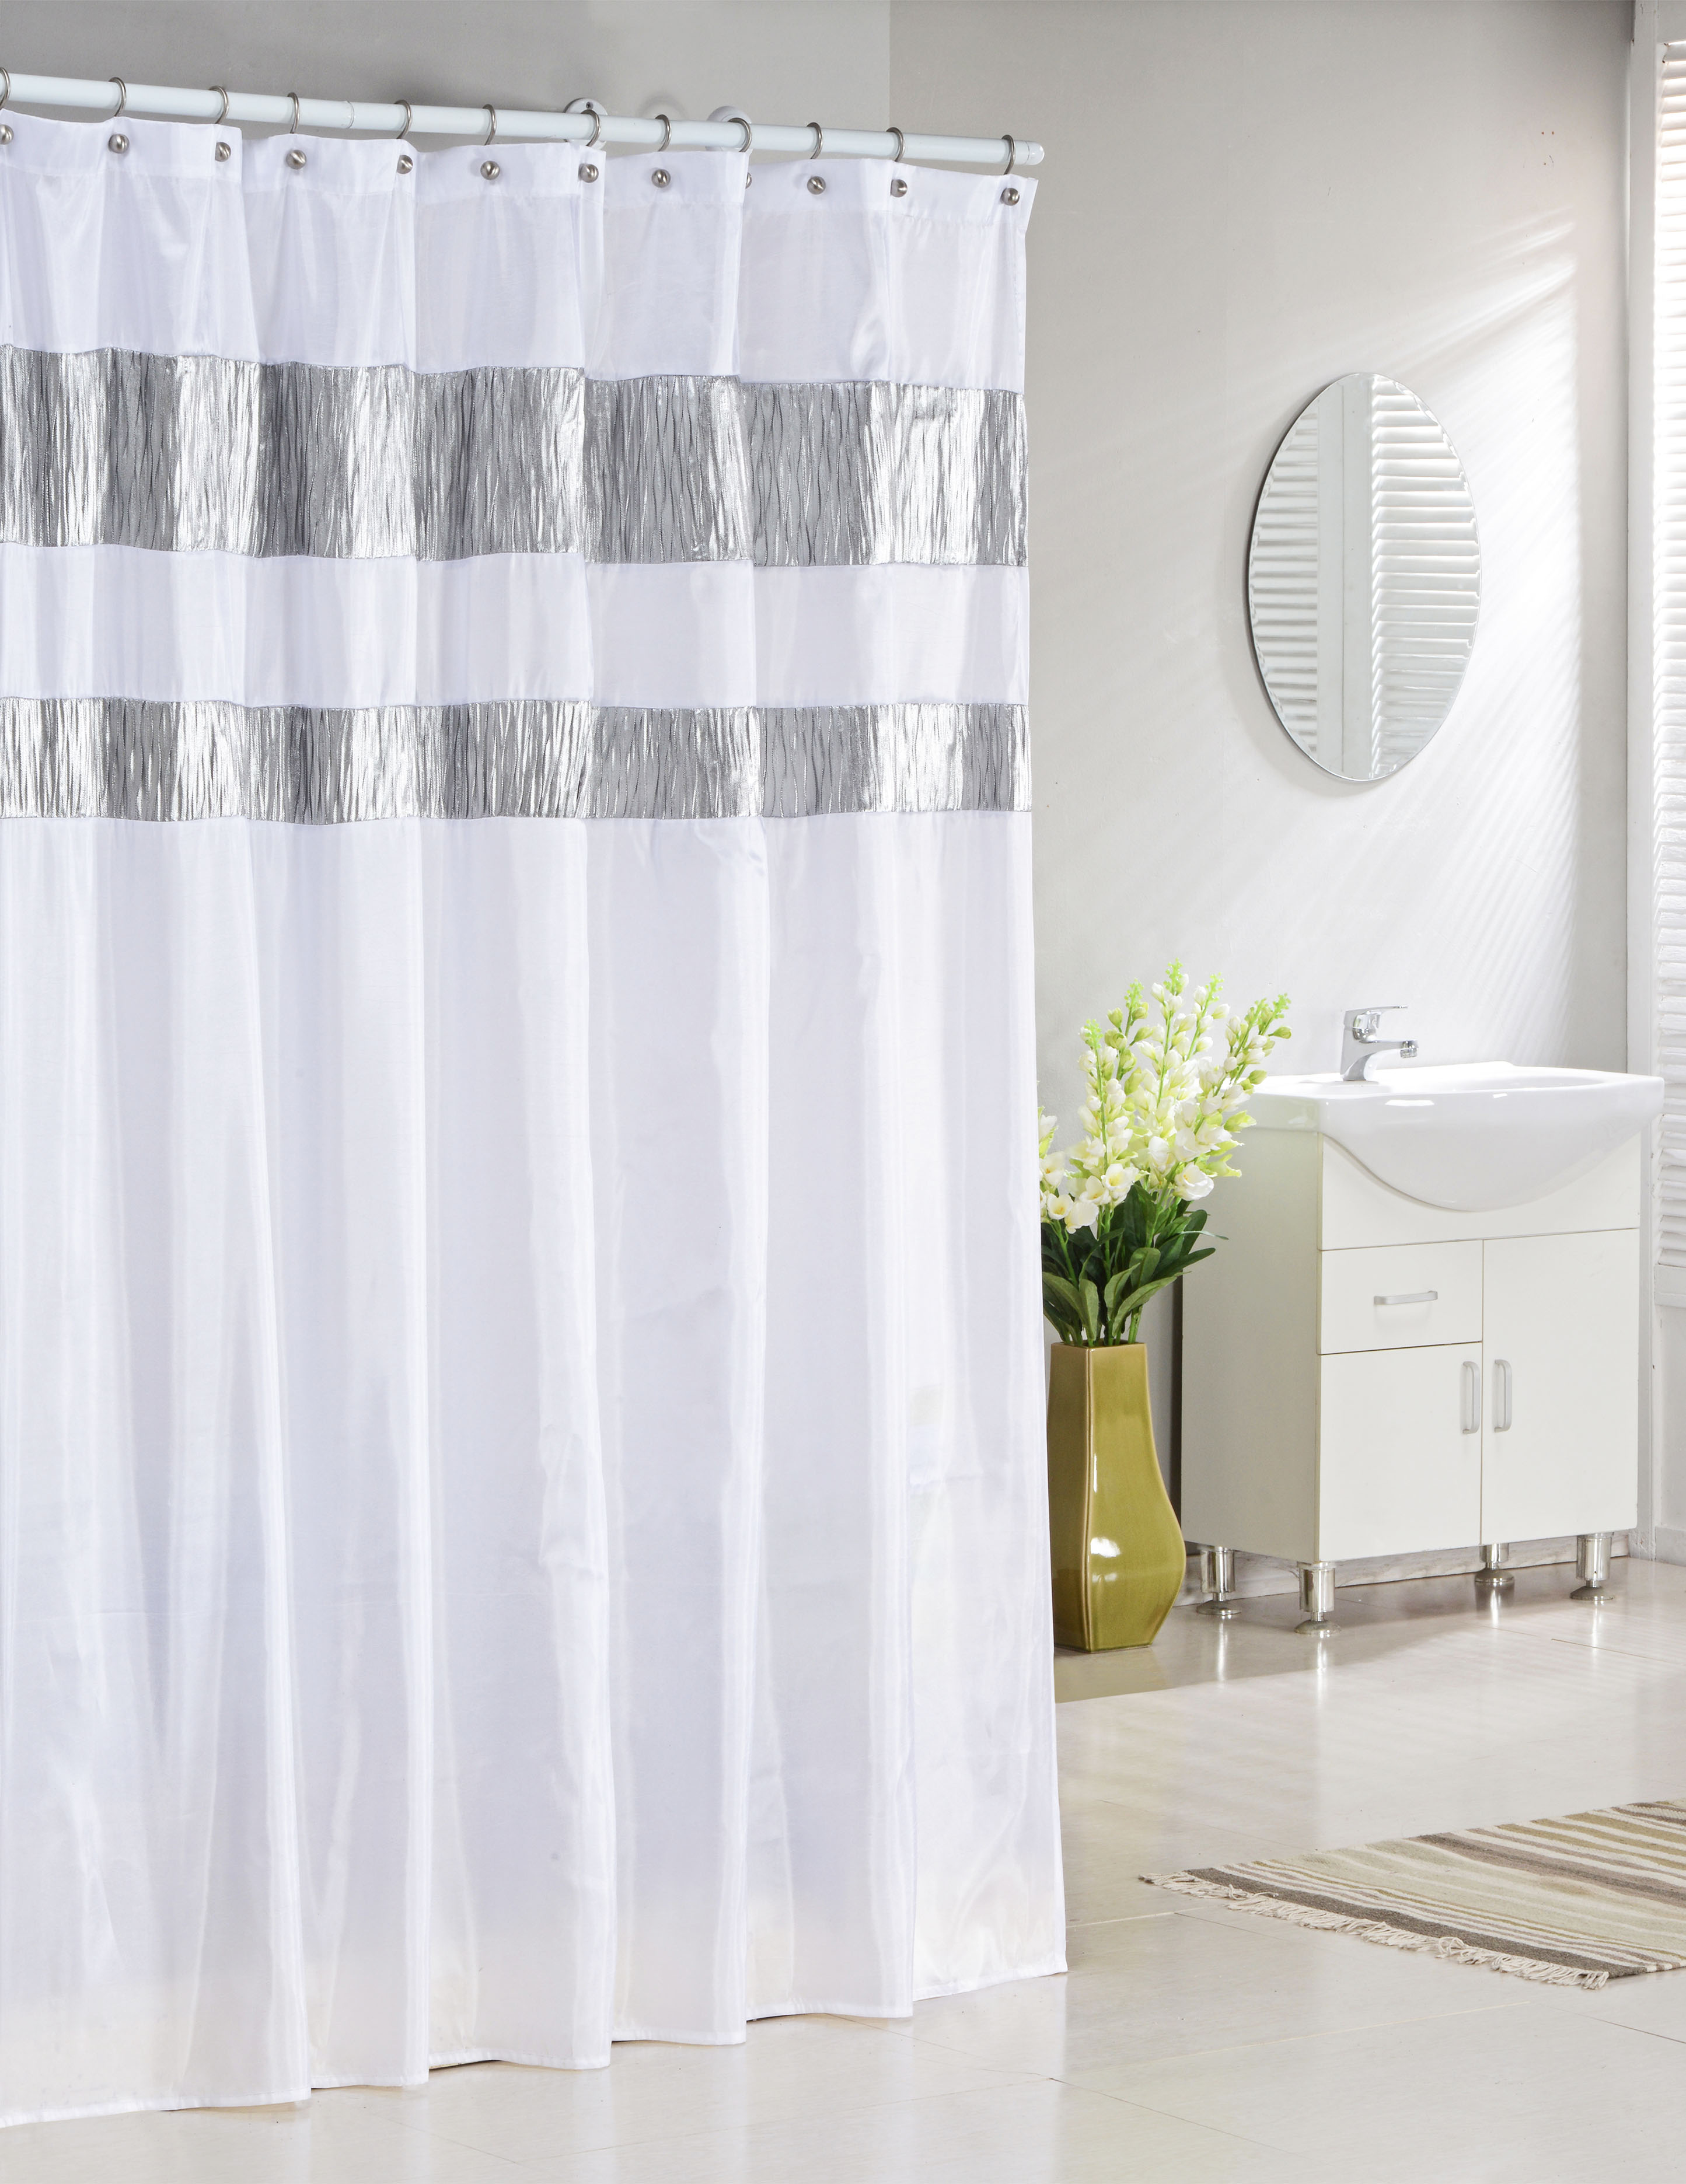 extra long 96 tall pure fabric shower curtain silver metallic accent stripes ebay. Black Bedroom Furniture Sets. Home Design Ideas